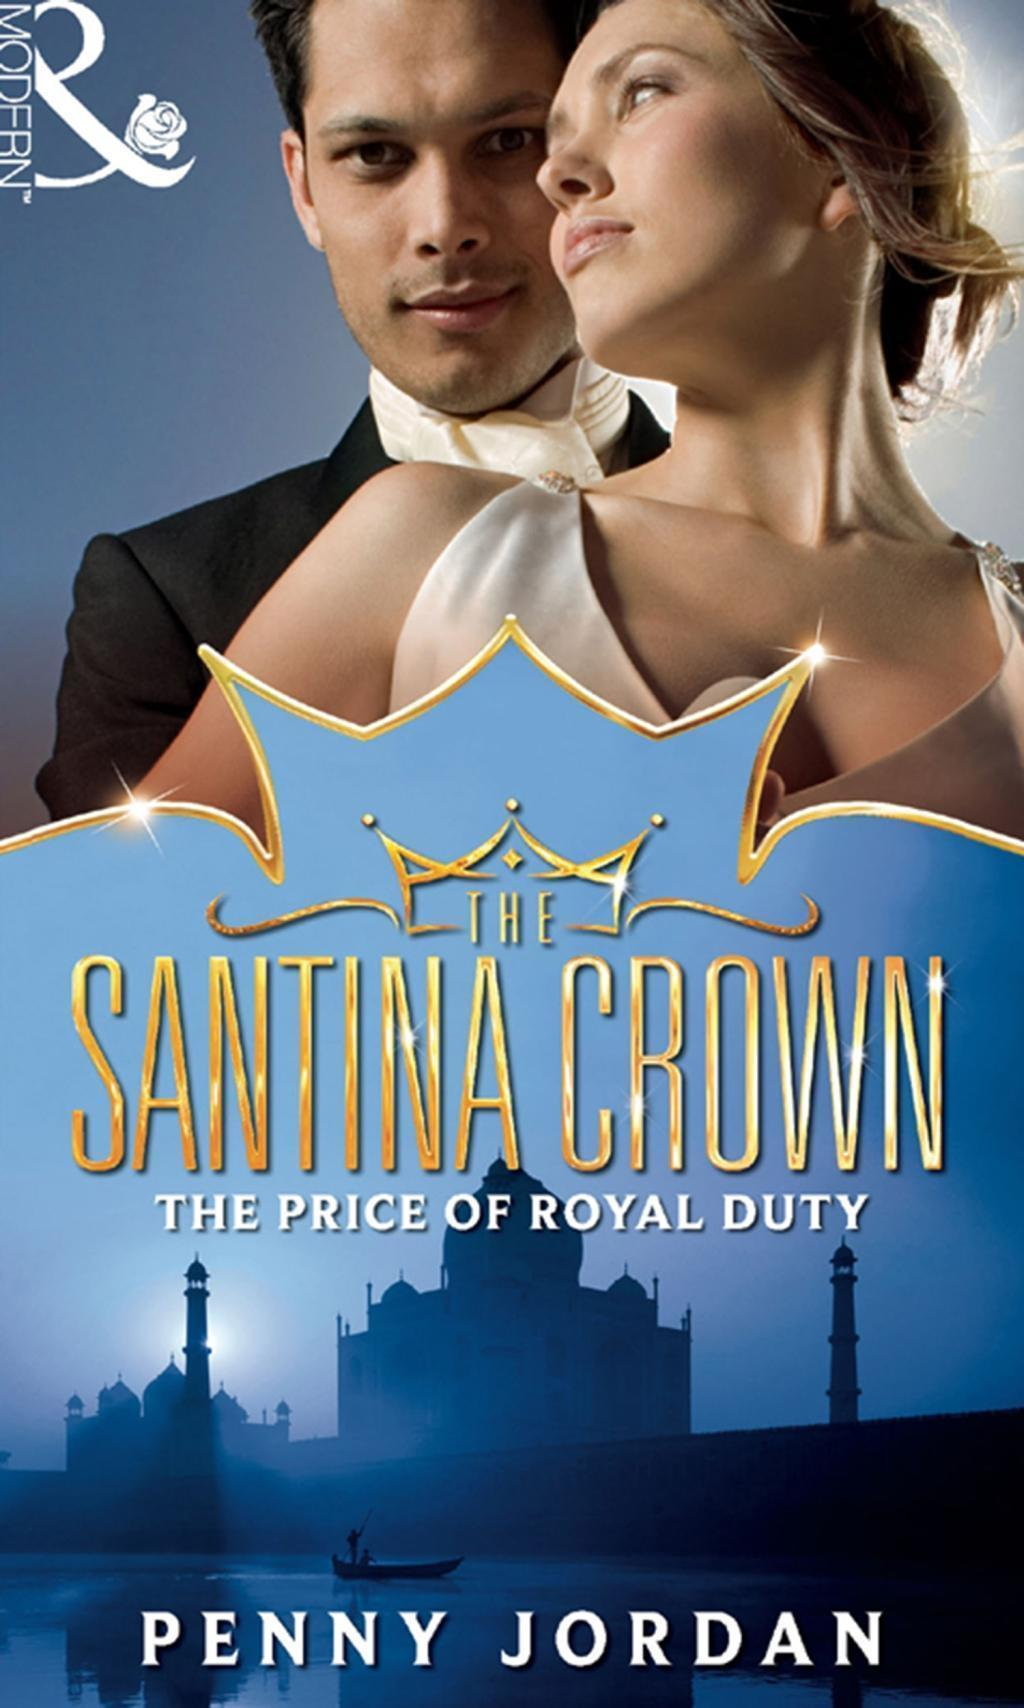 The Price of Royal Duty (Mills & Boon M&B) (The Santina Crown, Book 1)